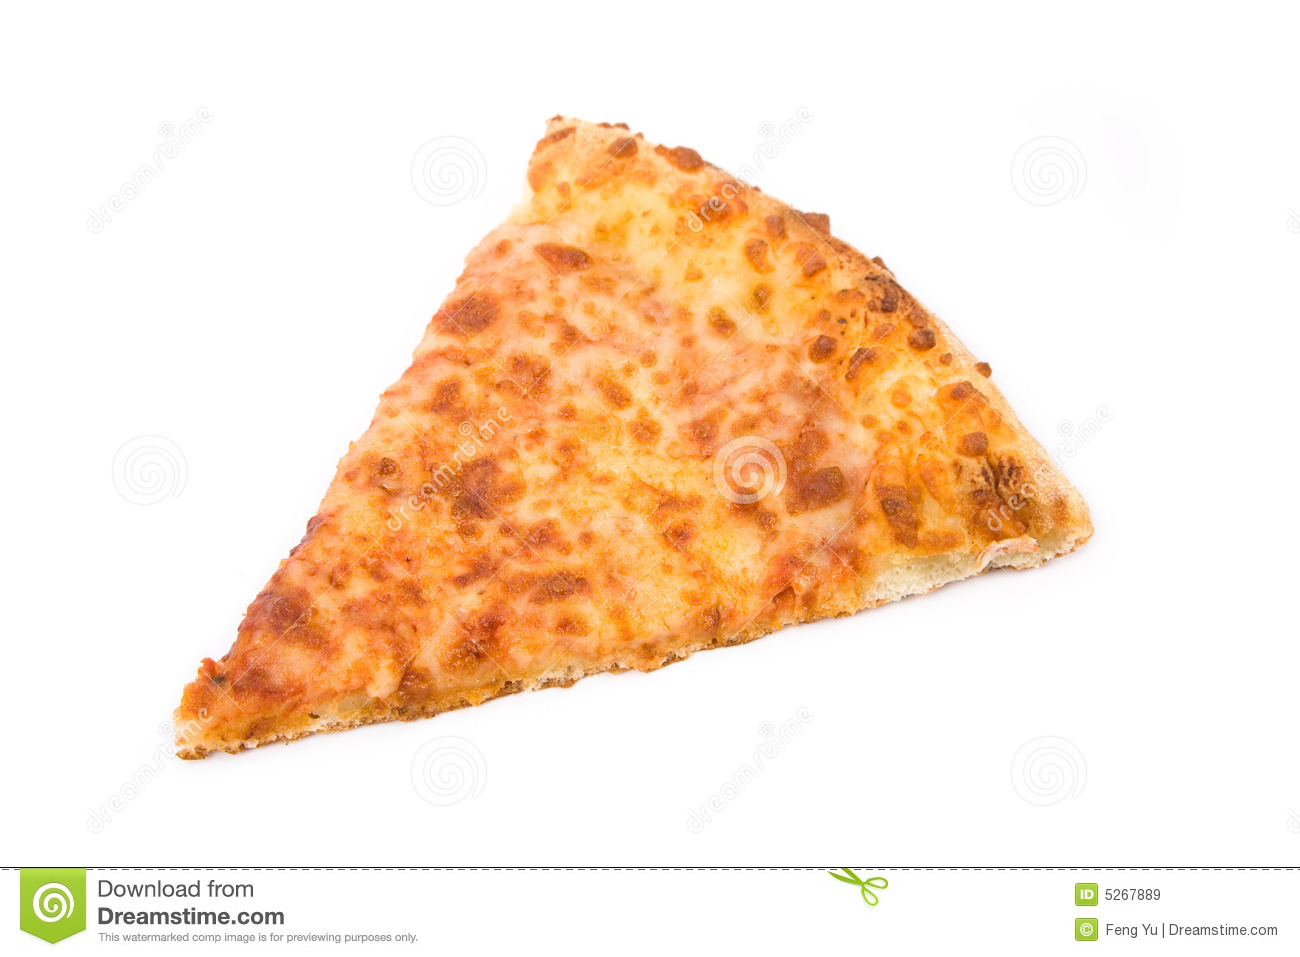 Cheese pizza clipart free 3 » Clipart Station.